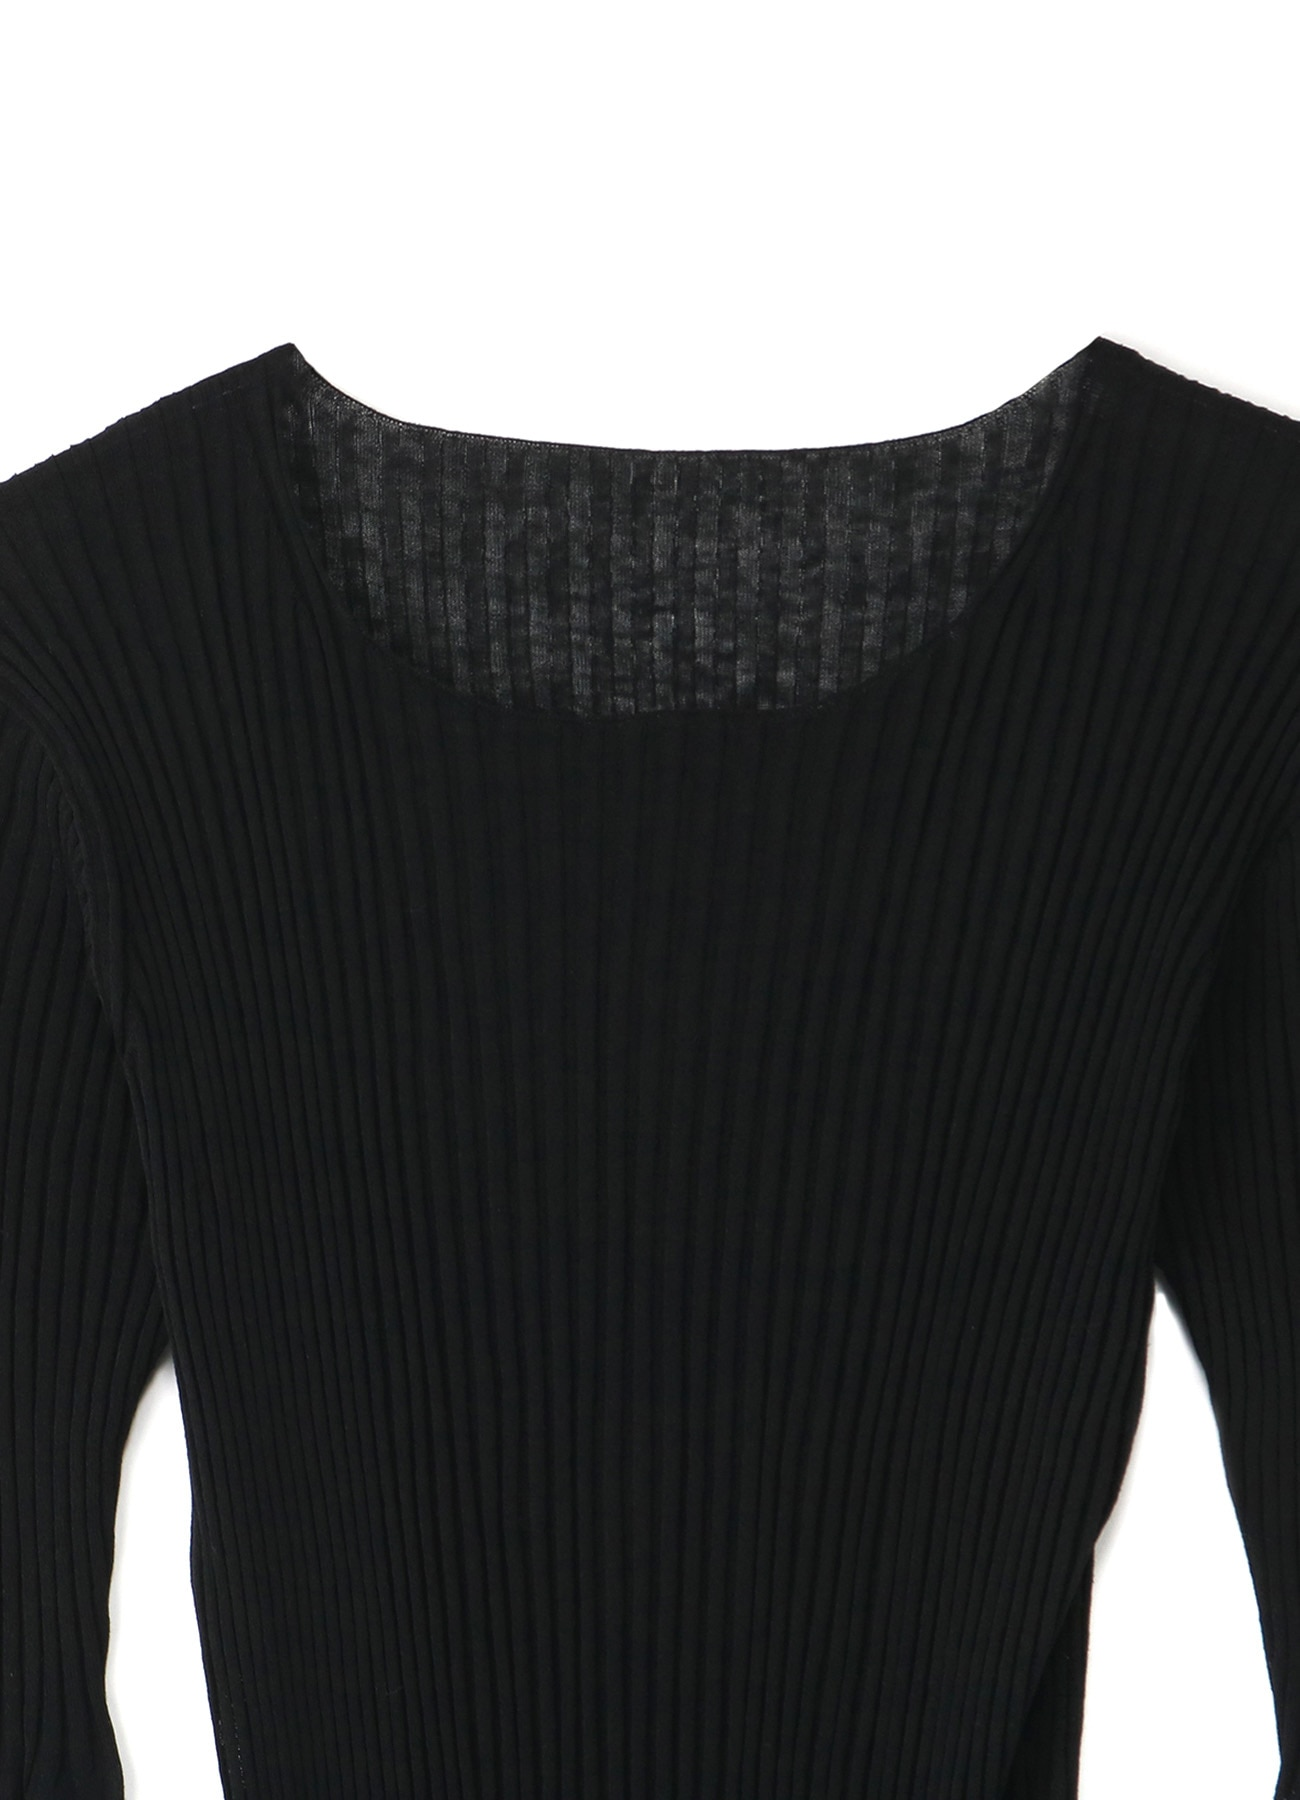 16G2P PS RIB RIB LONG SLEEVE OP